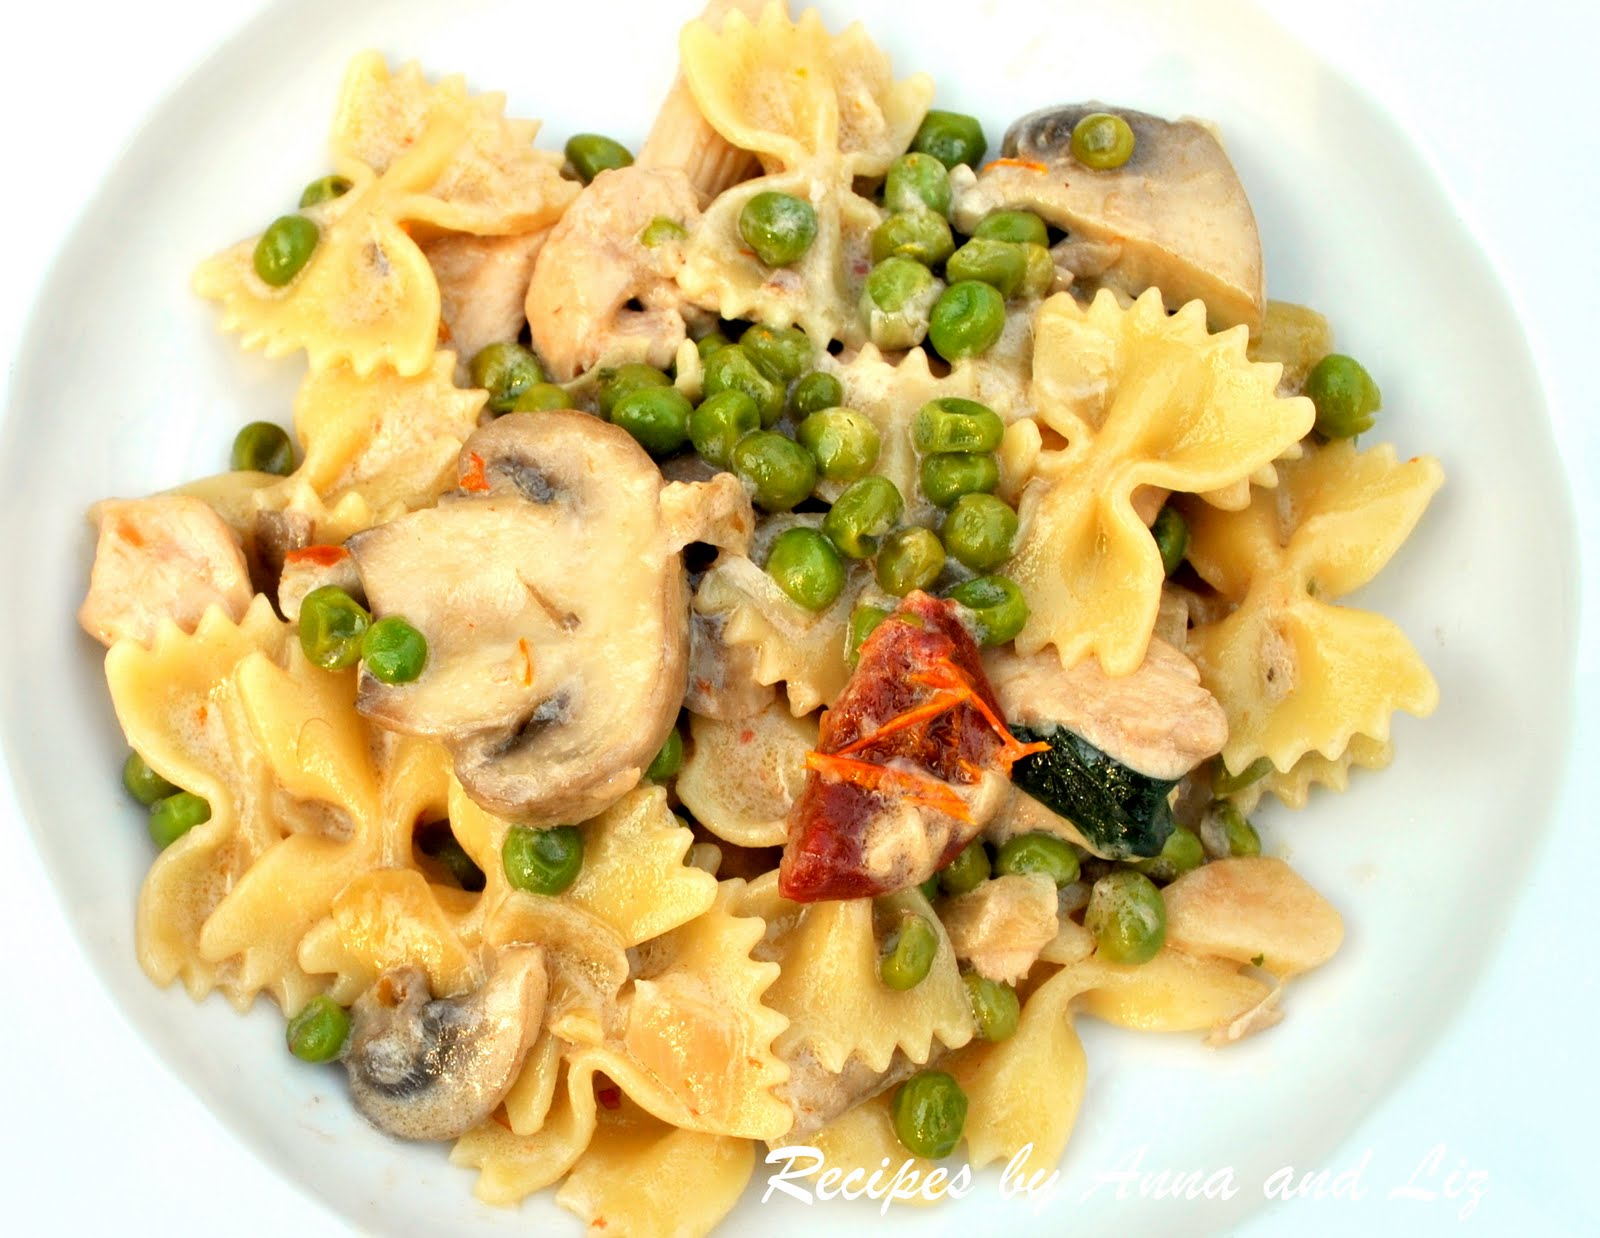 ... and Liz: Pasta with Chicken, Peas, Mushrooms and Sun Dried Tomatoes